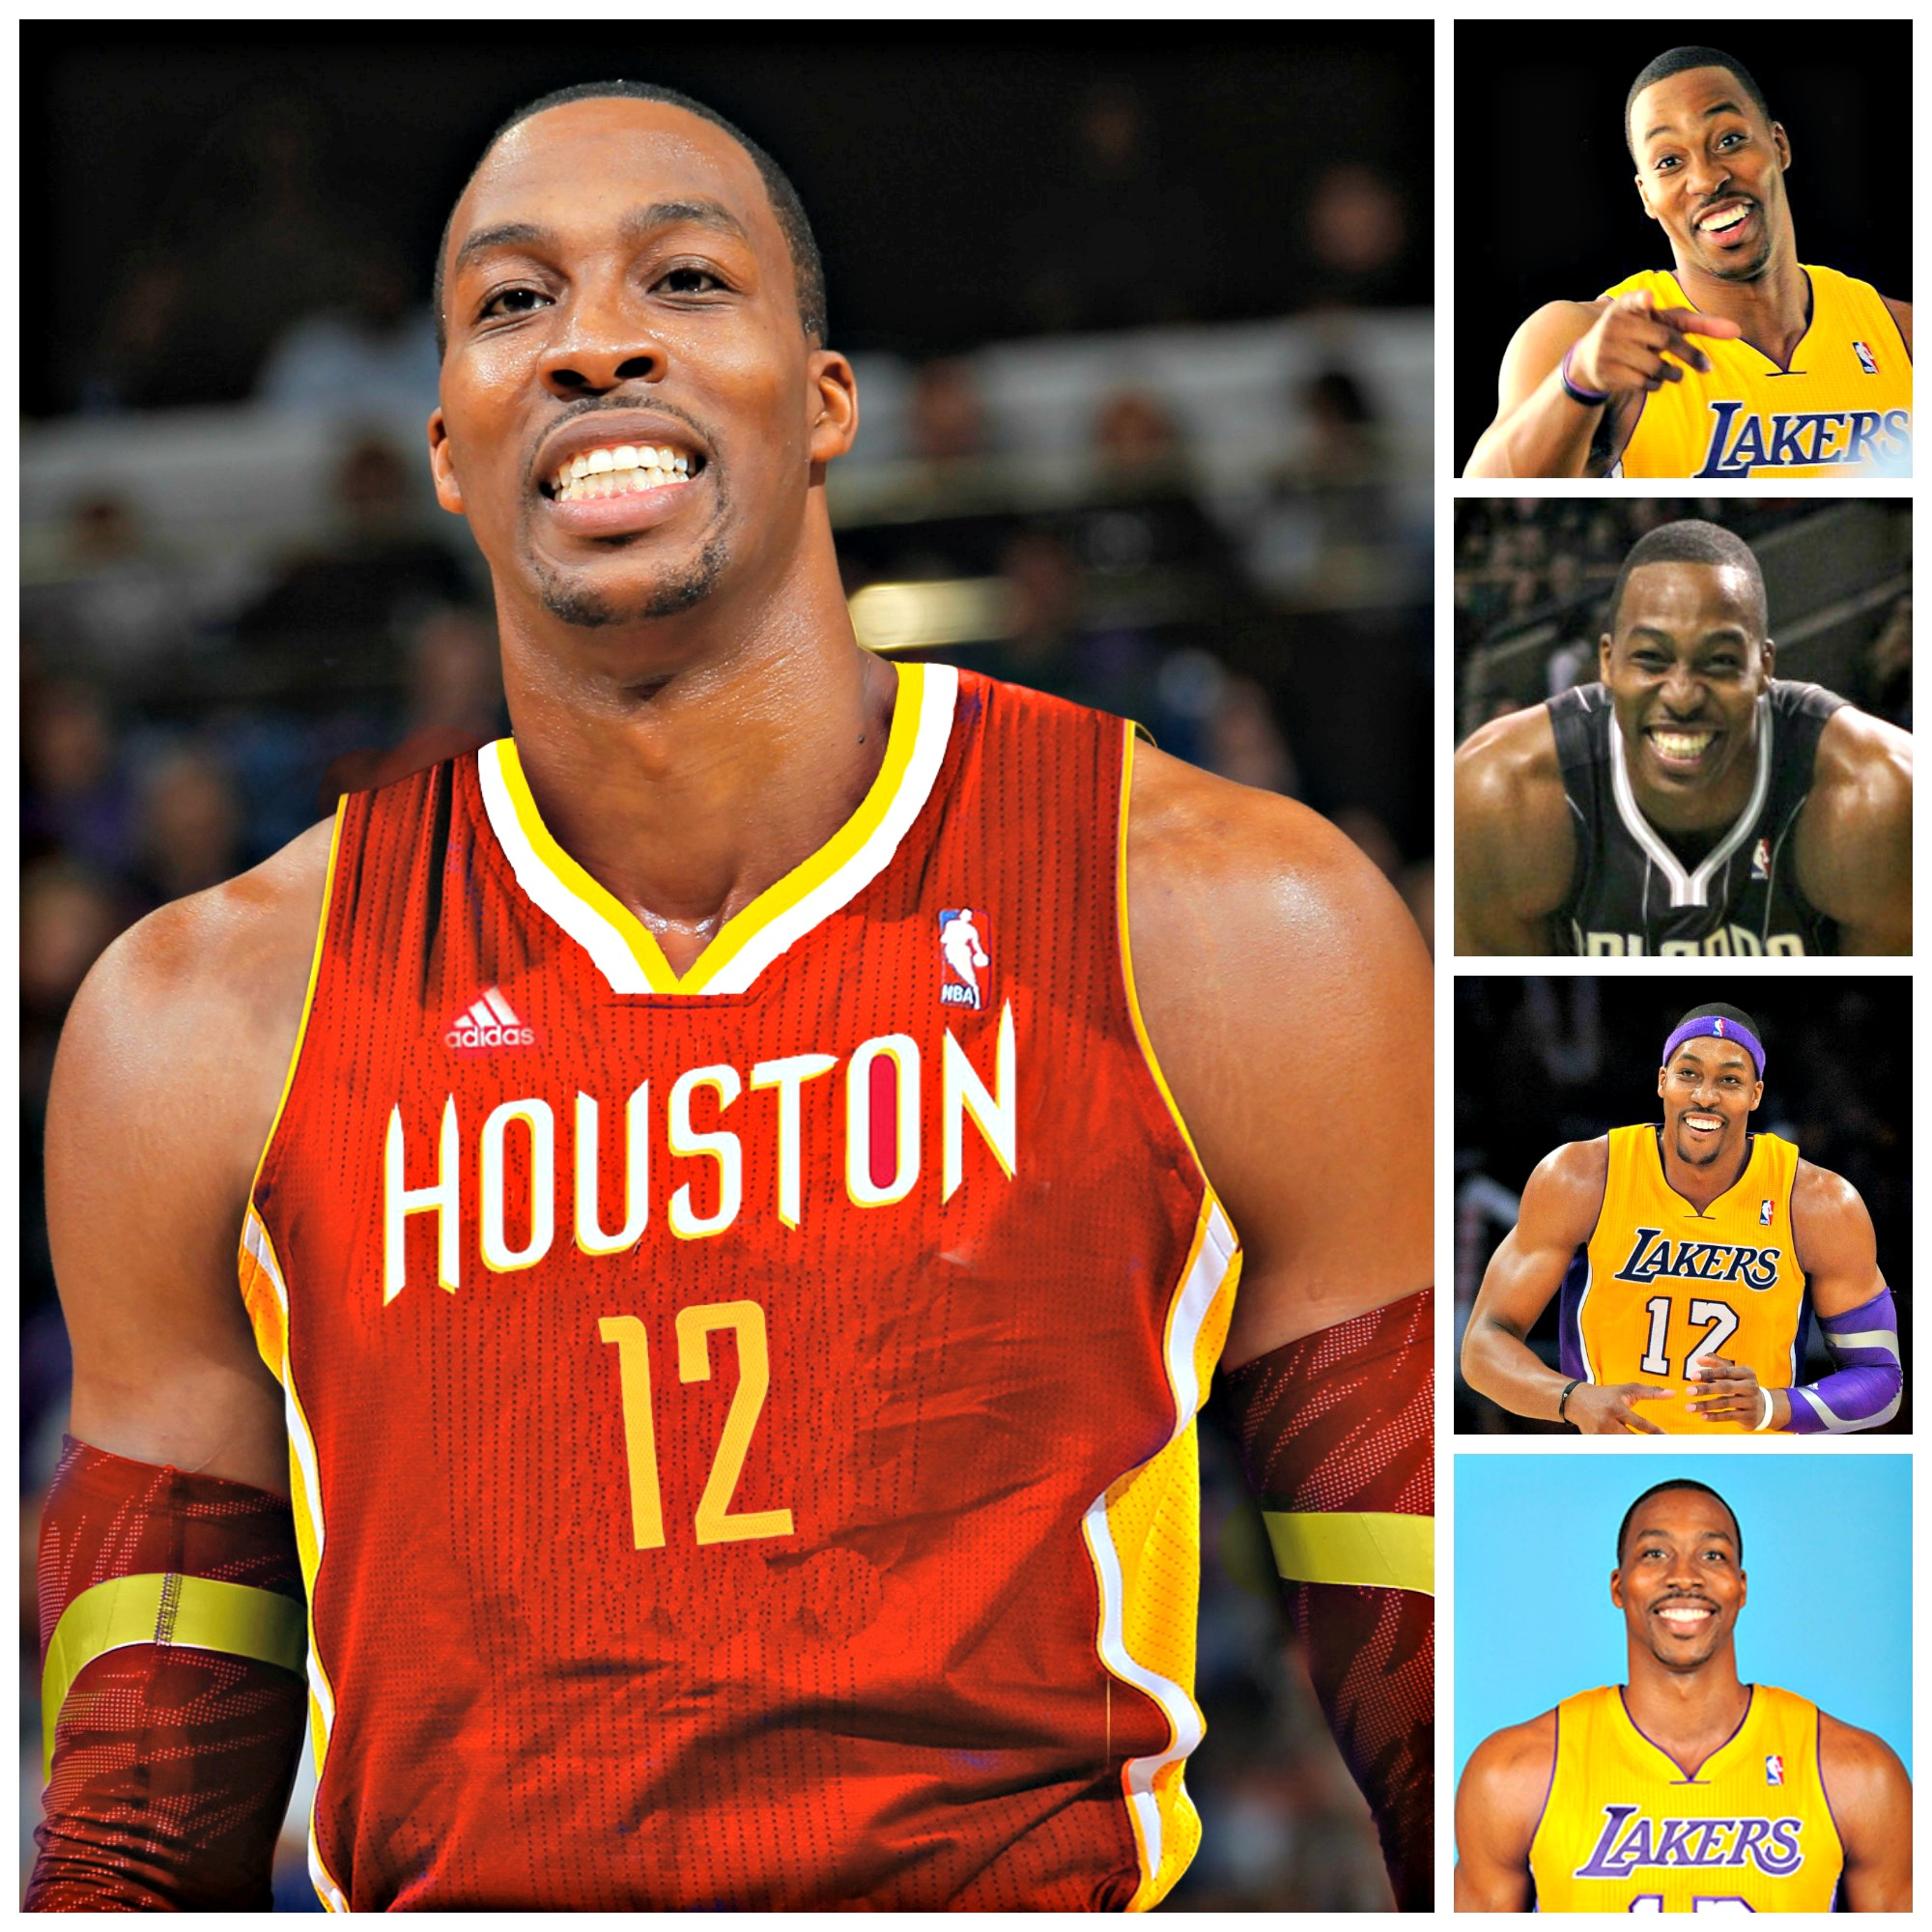 We Hate Dwight Howard: The long list of NBA players that hate Dwight Howard